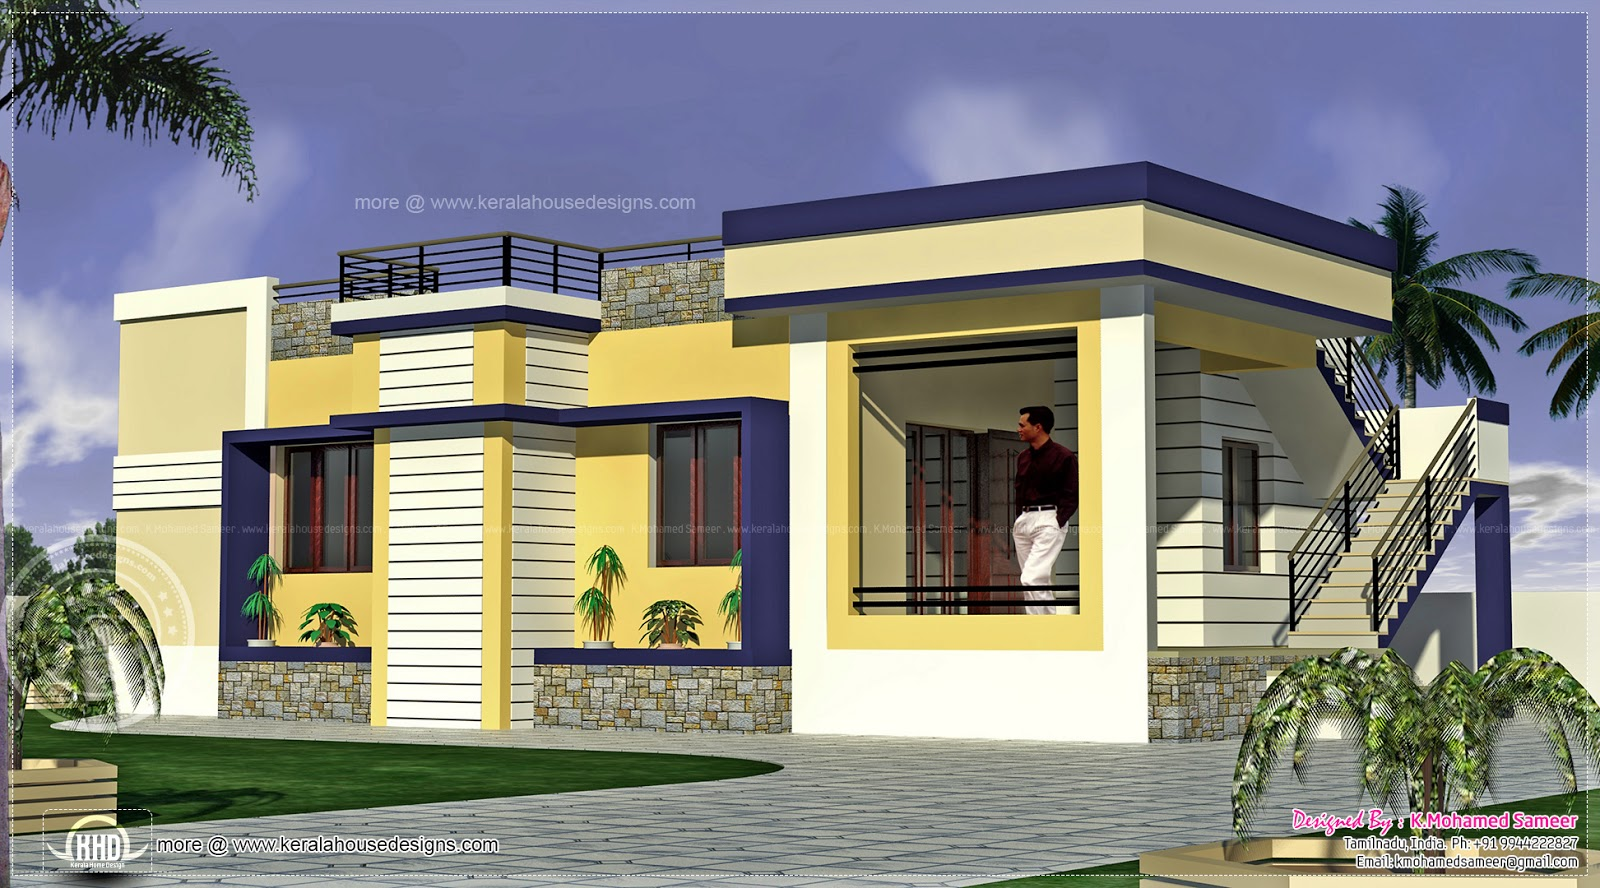 Kerala tamil nadu house plans 1000 sq ft house plans 1000 for Kerala home design 1000 sq feet